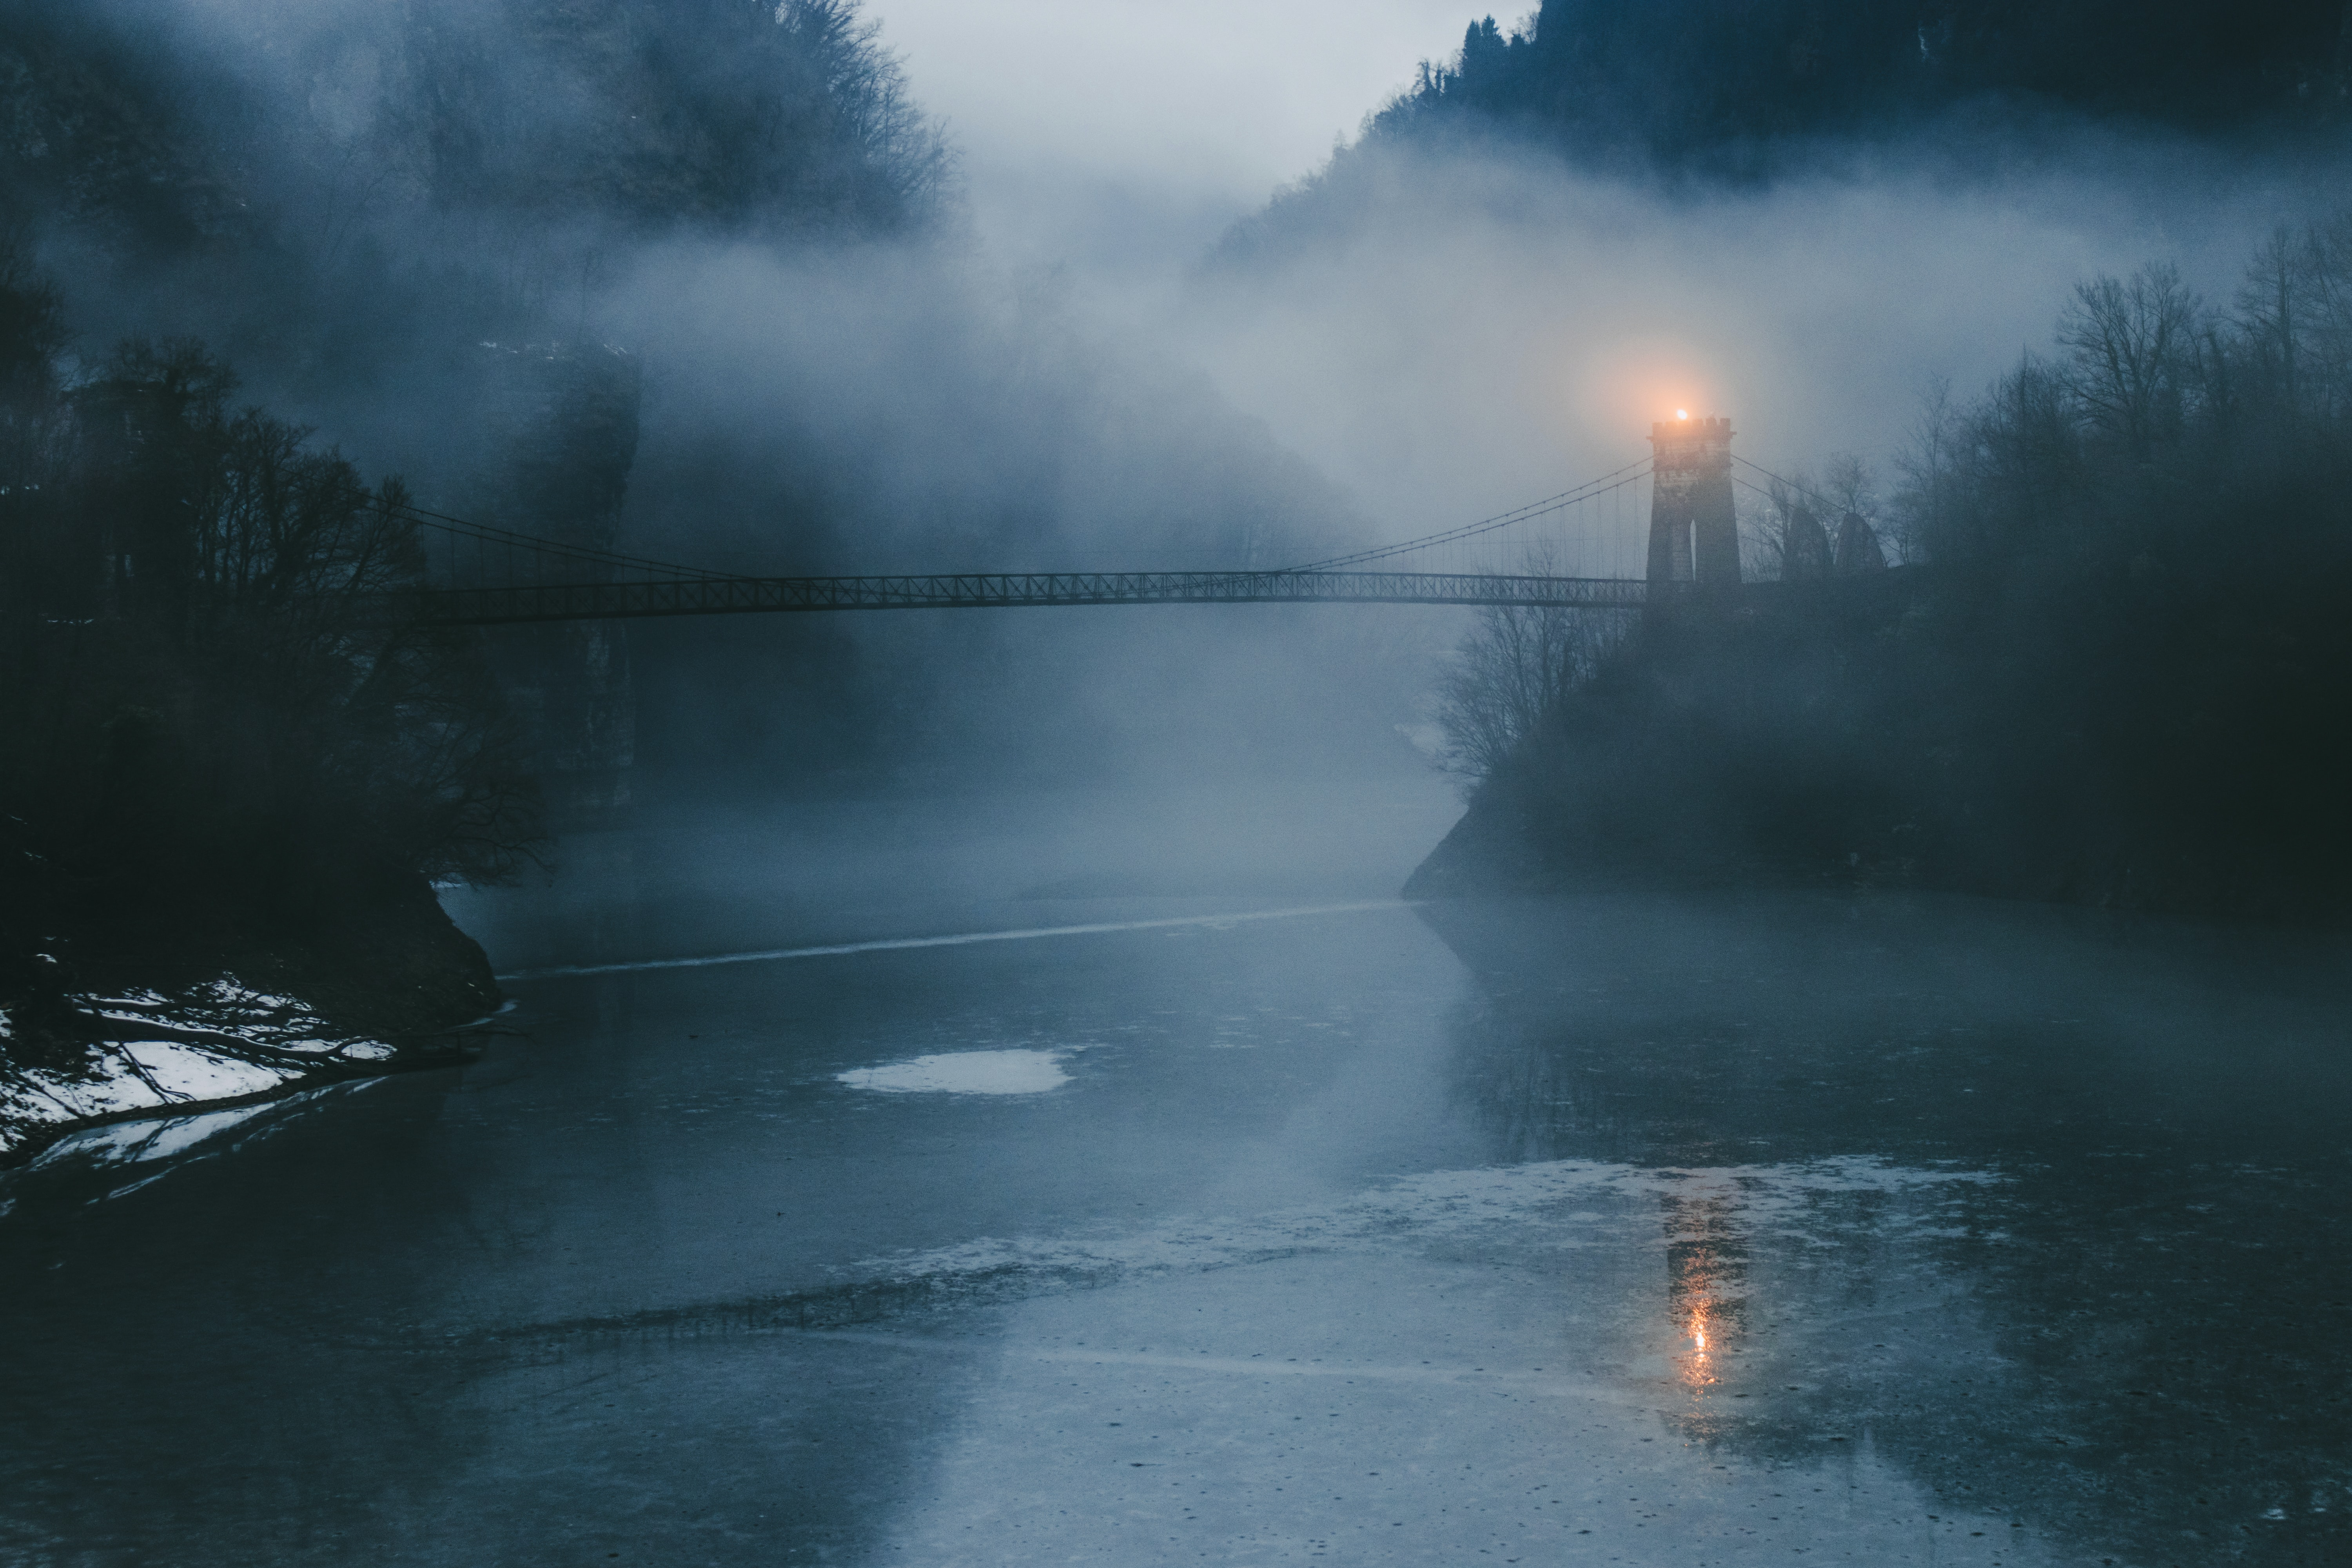 bridge with watchtower with fogs